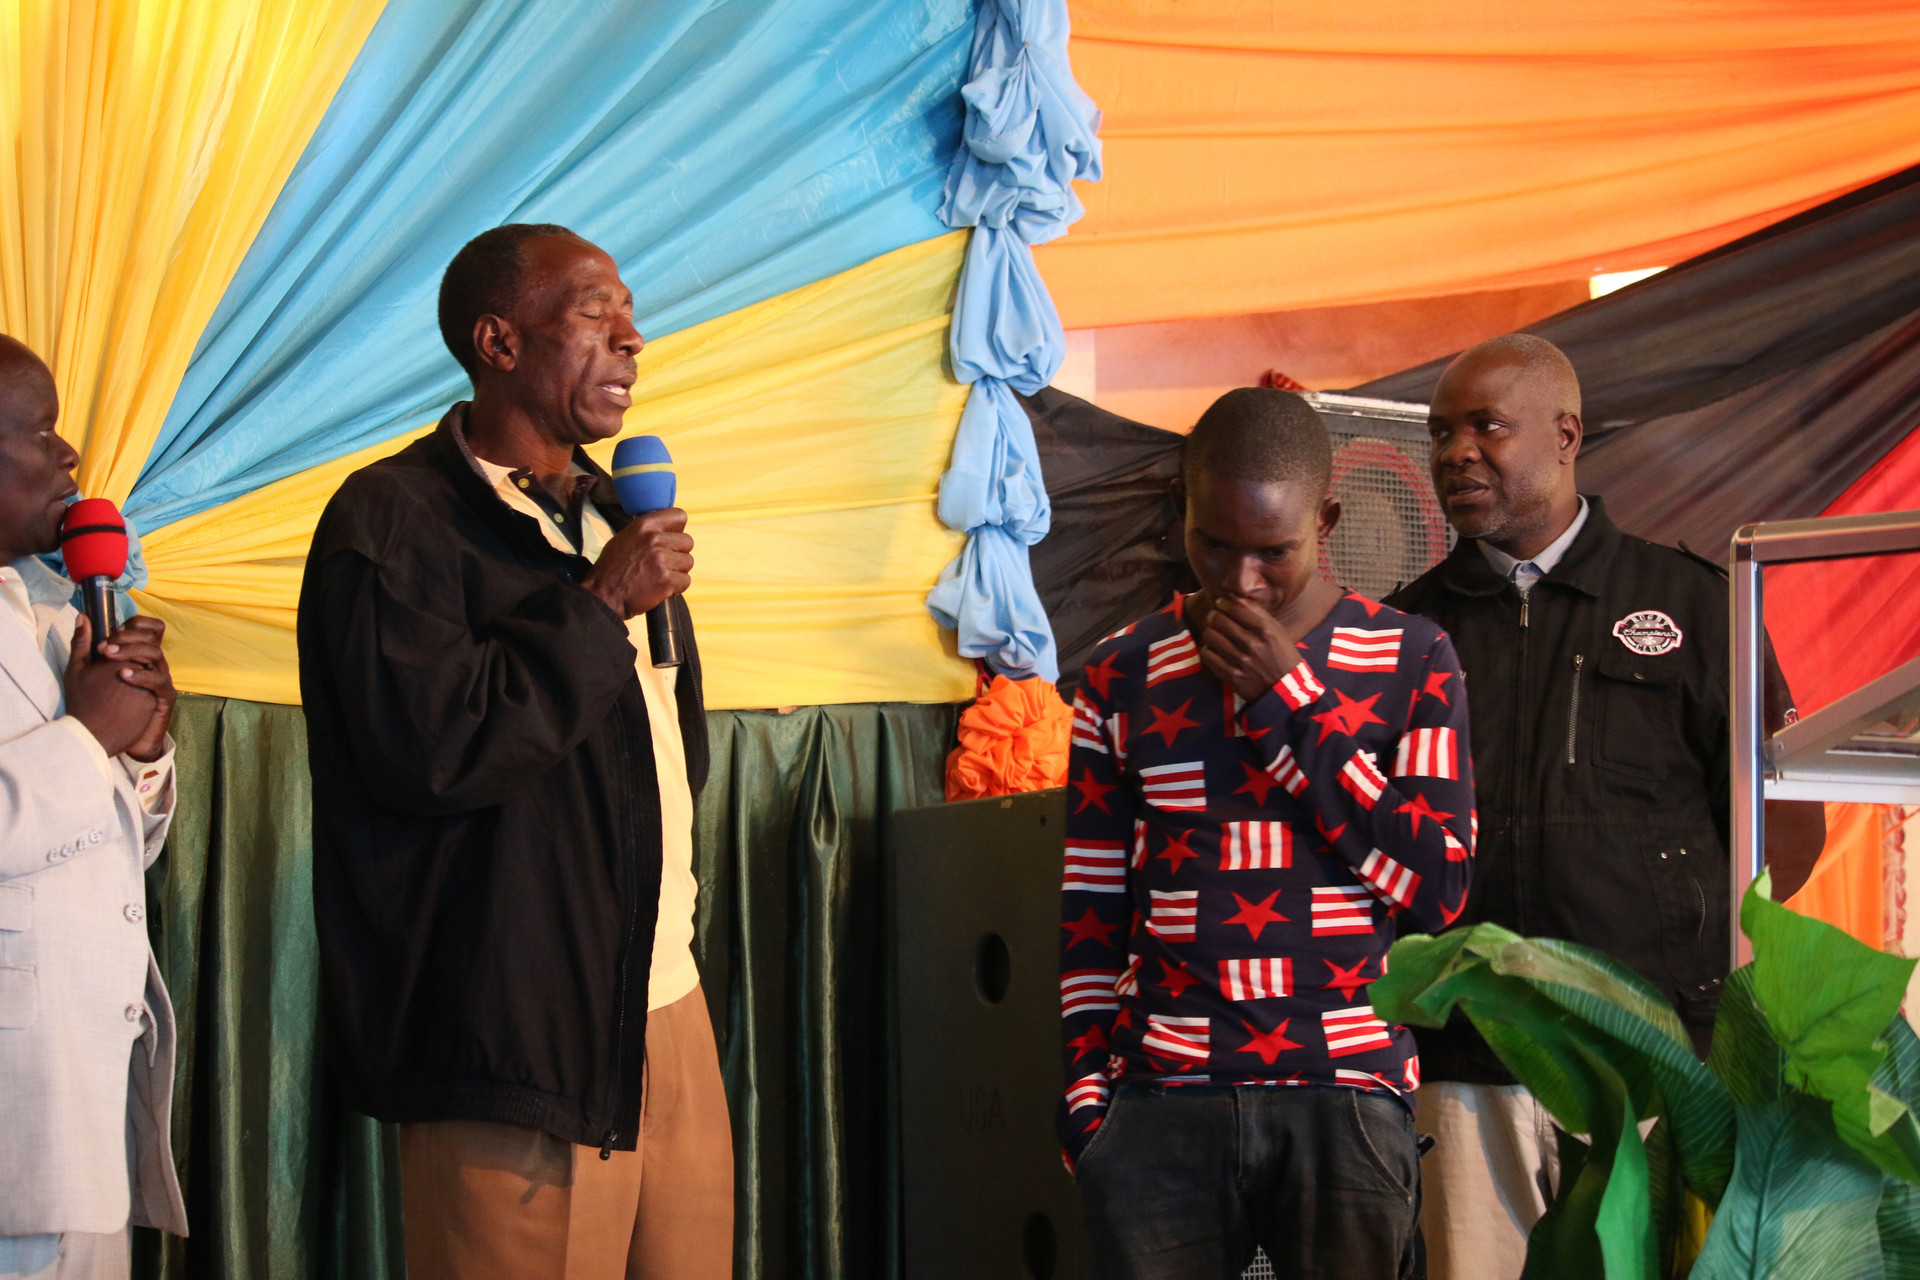 Pastors sharing testimonies of the previous day's time of evangelism in their neighborhoods